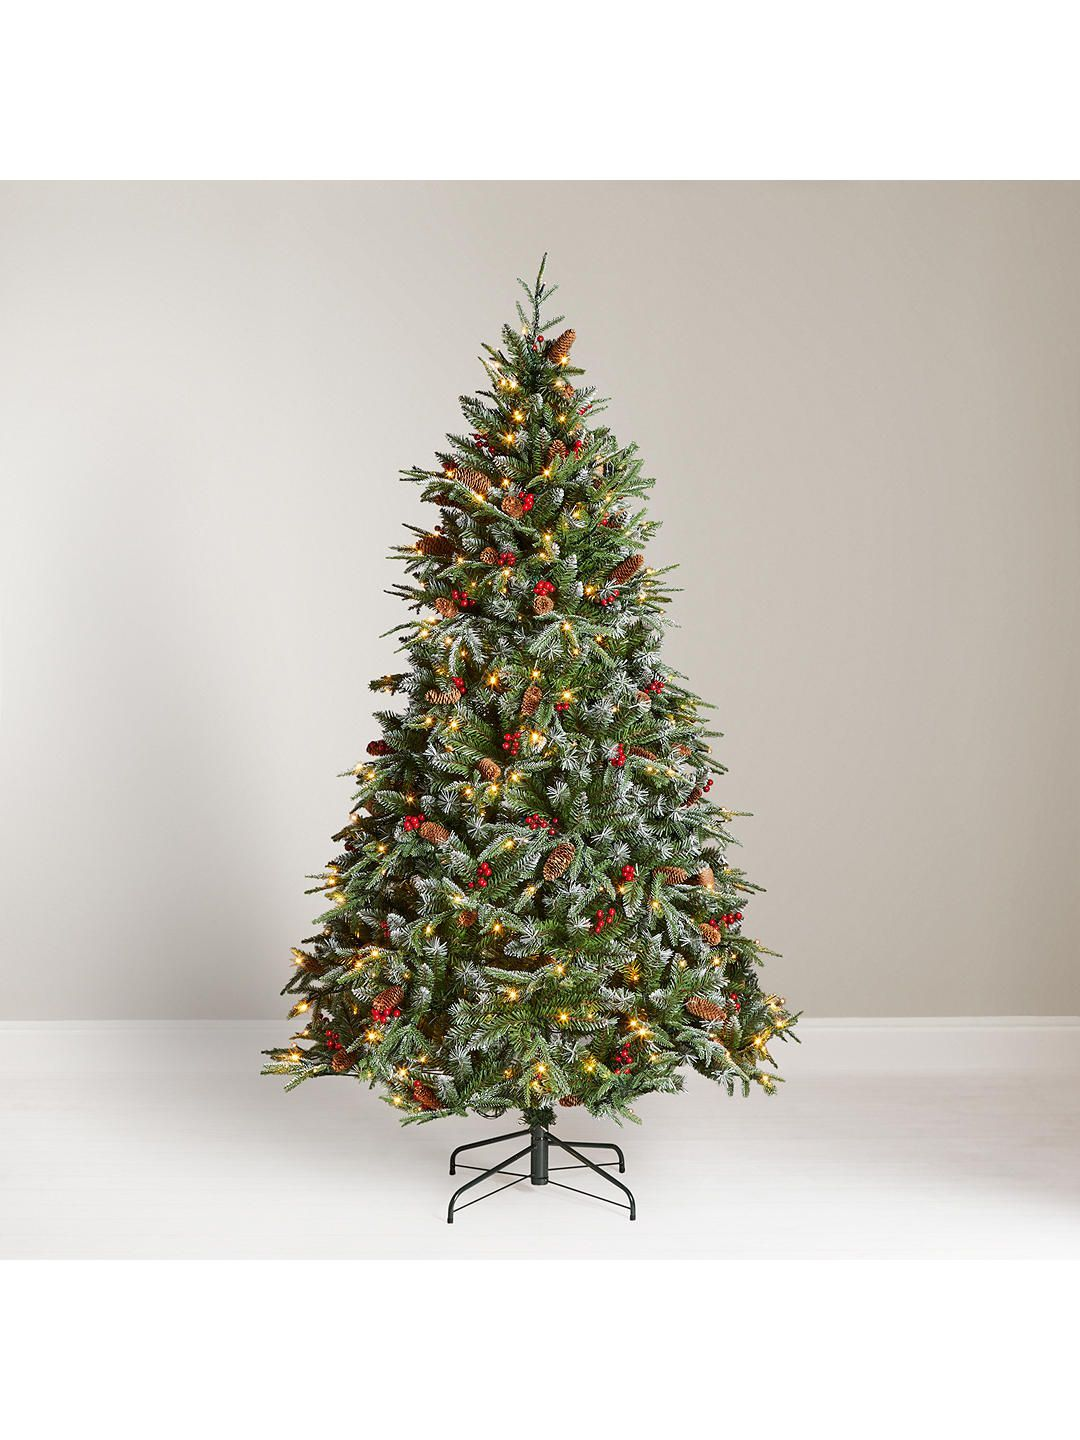 11 Of The Best Pre Lit Christmas Trees For Your Home Pre Lit Christmas Tree Christmas Tree 6ft Christmas Tree